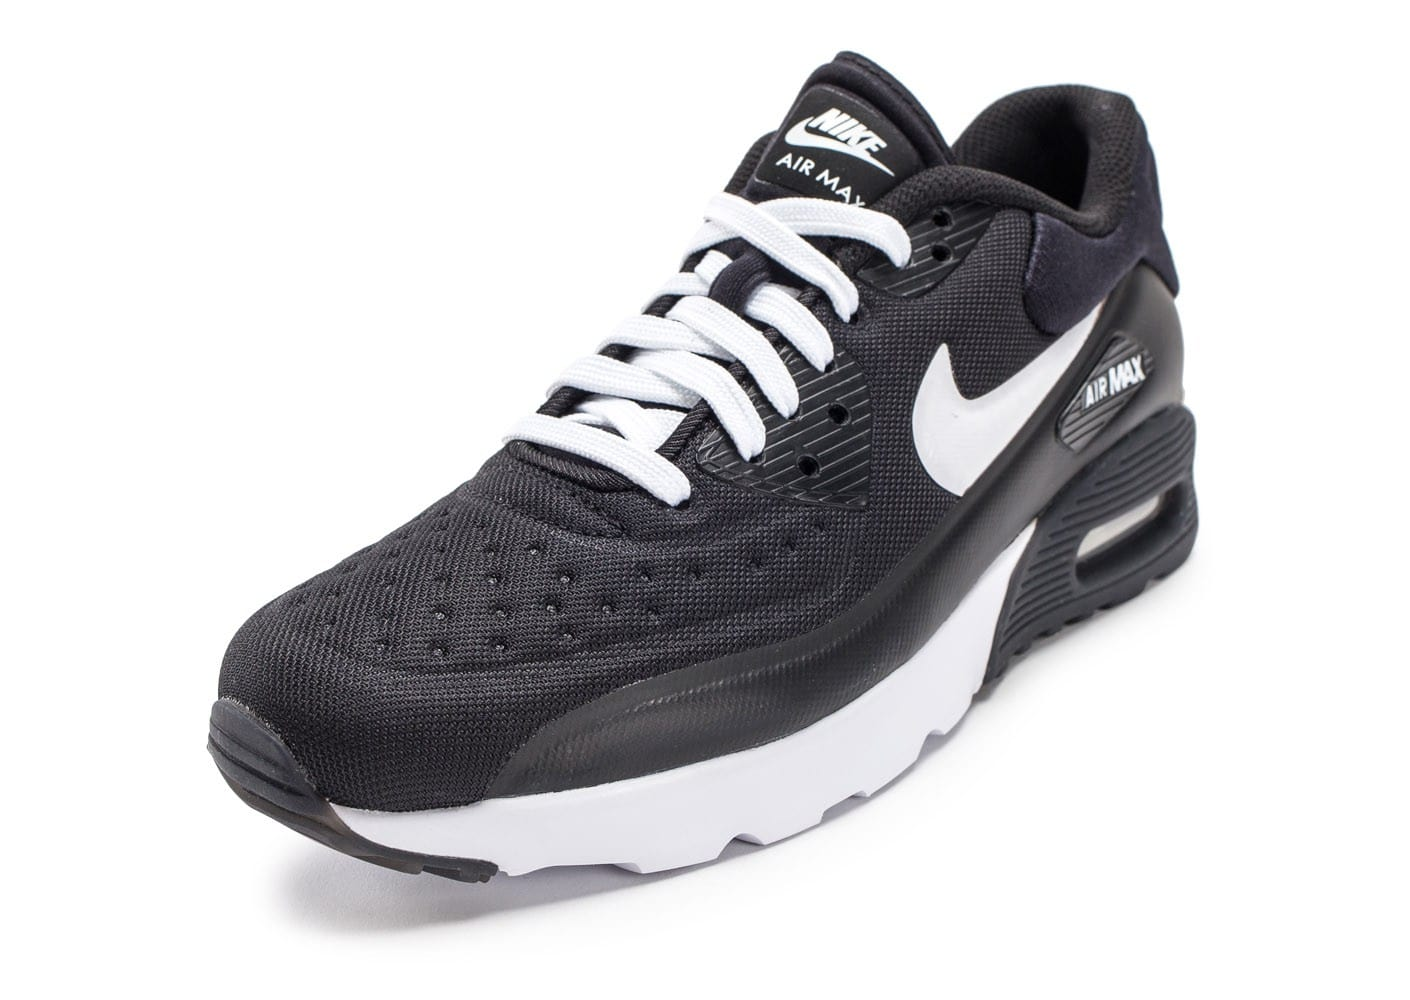 new product e5ece 23a49 Chaussures Nike Air Max 90 Junior